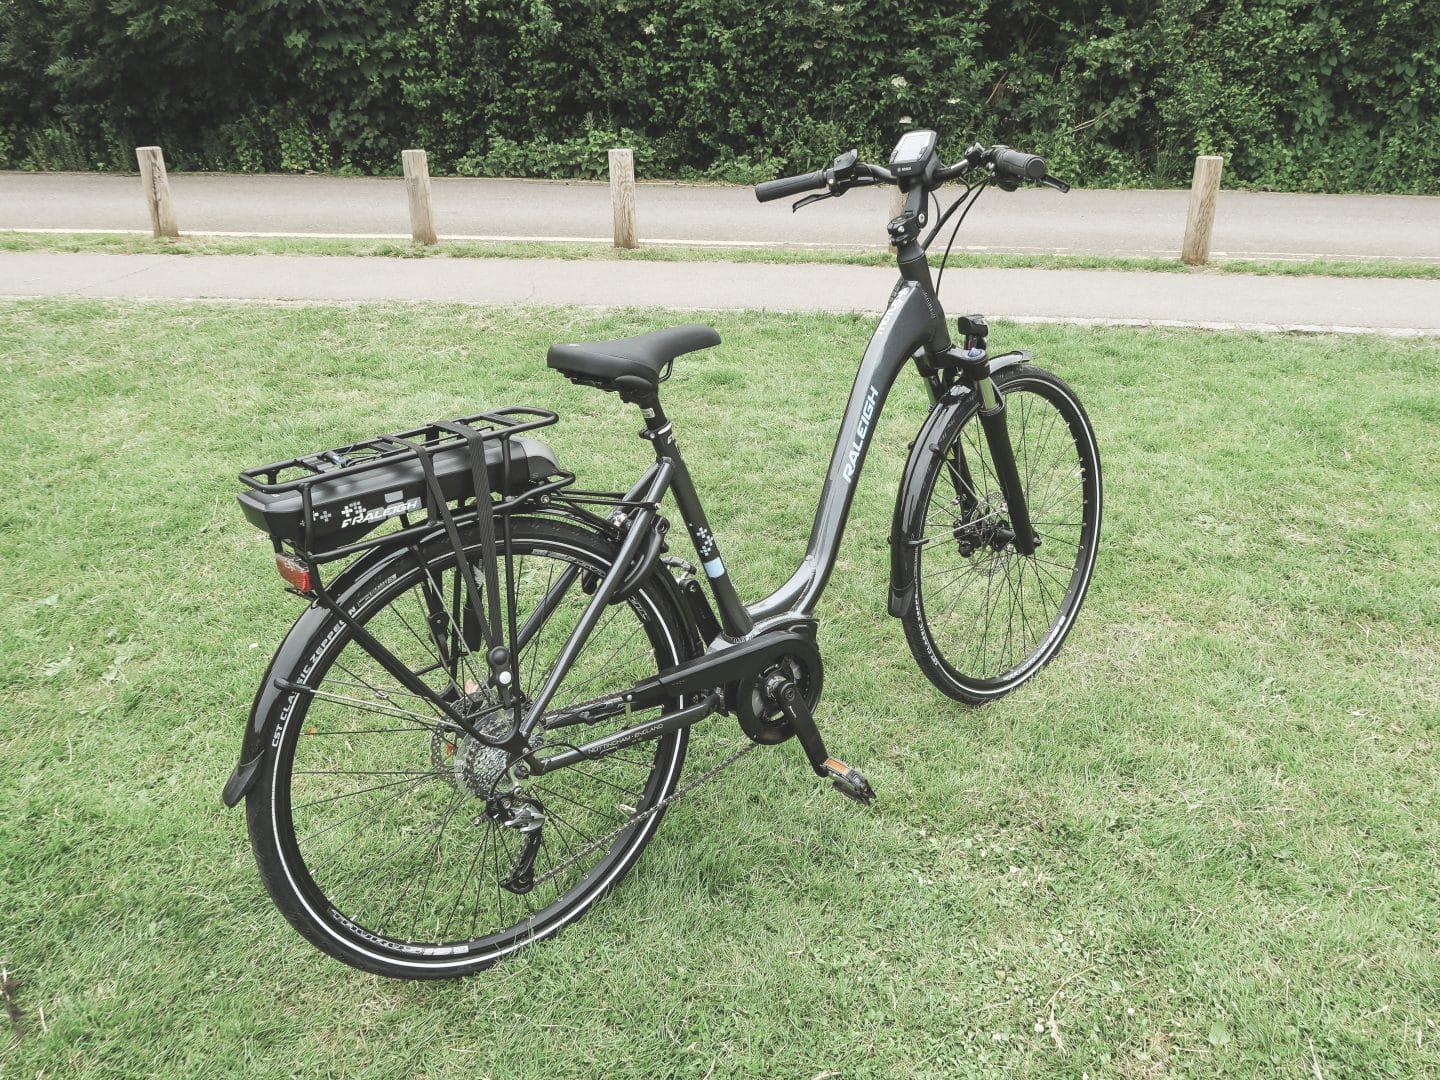 Raleigh Motus e-Bike Review | Curiously Conscious